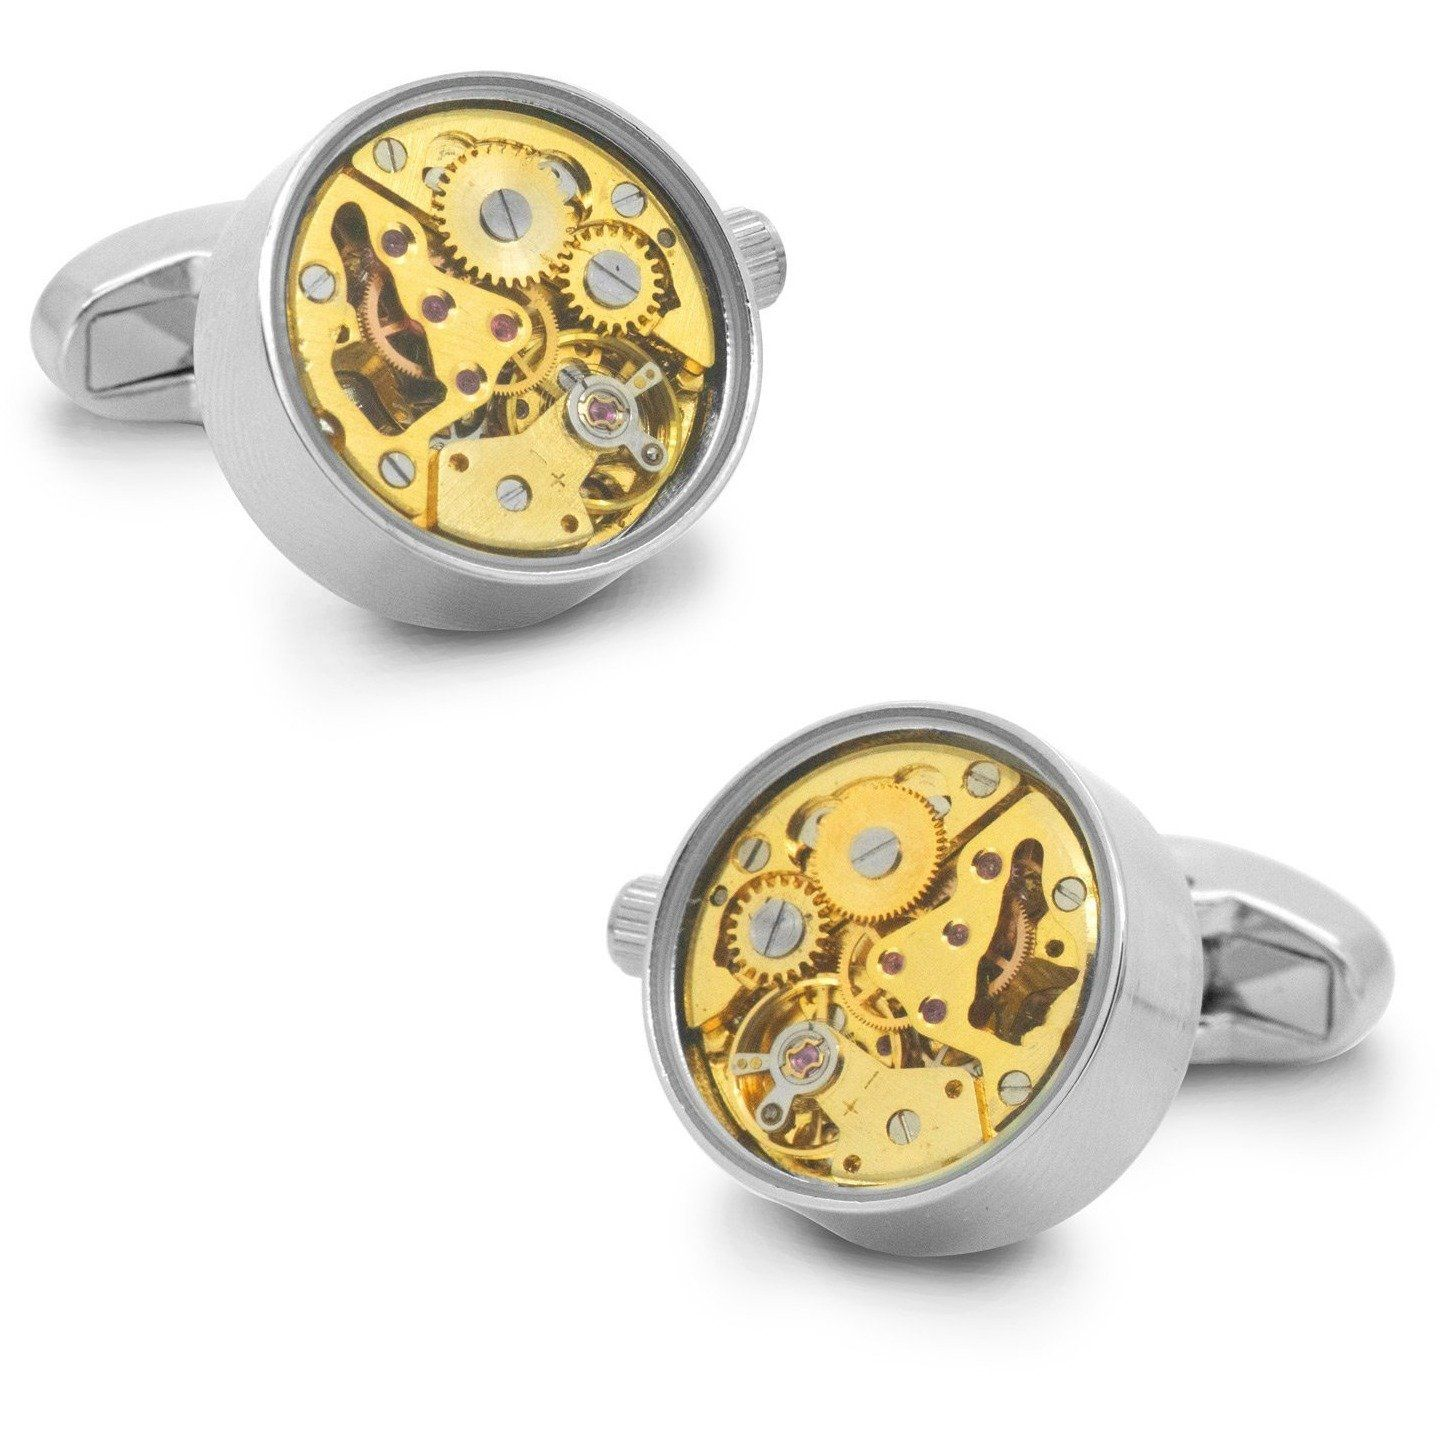 Working Watch Movement Steampunk Cufflinks Silver and Gold, Novelty Cufflinks, Cuffed.com.au, CL5564, $79.00